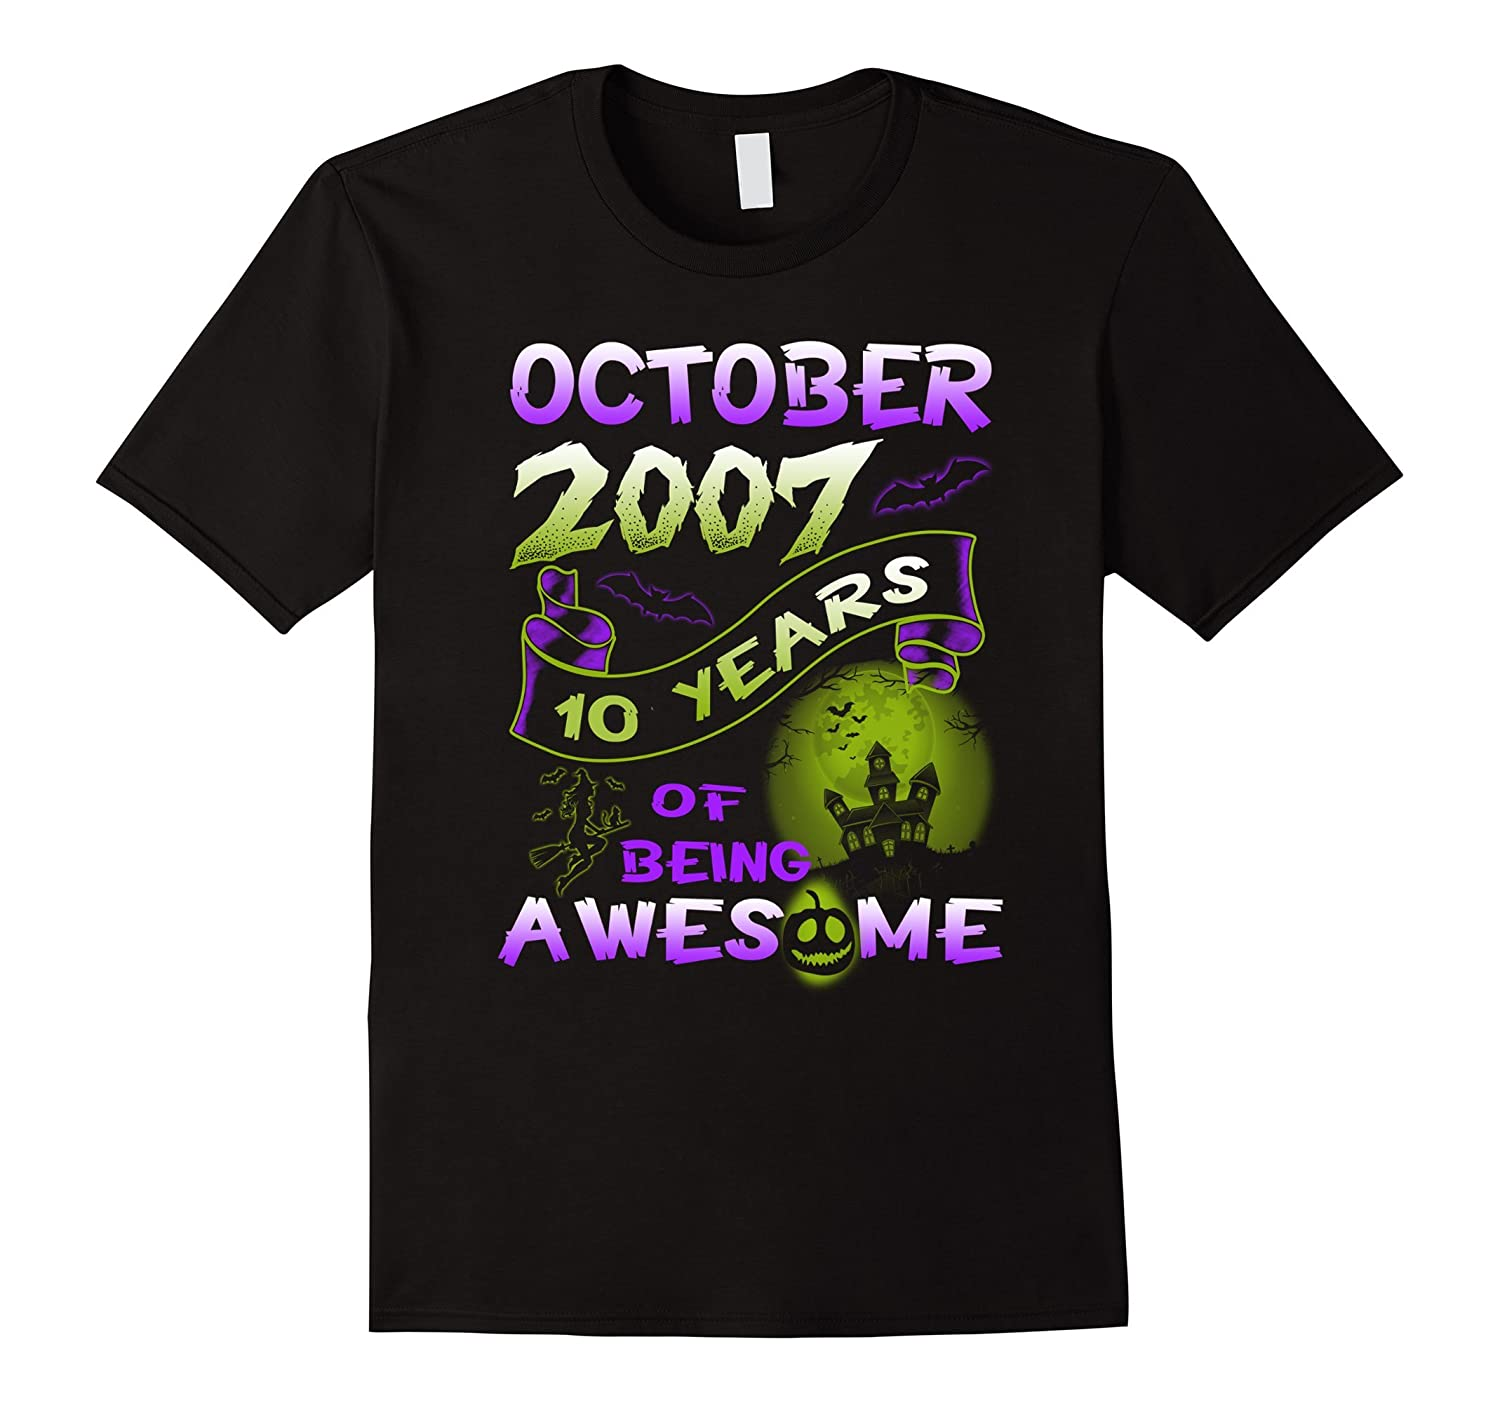 10 years of being awesome - Born in October 2007 Tshirt-Rose